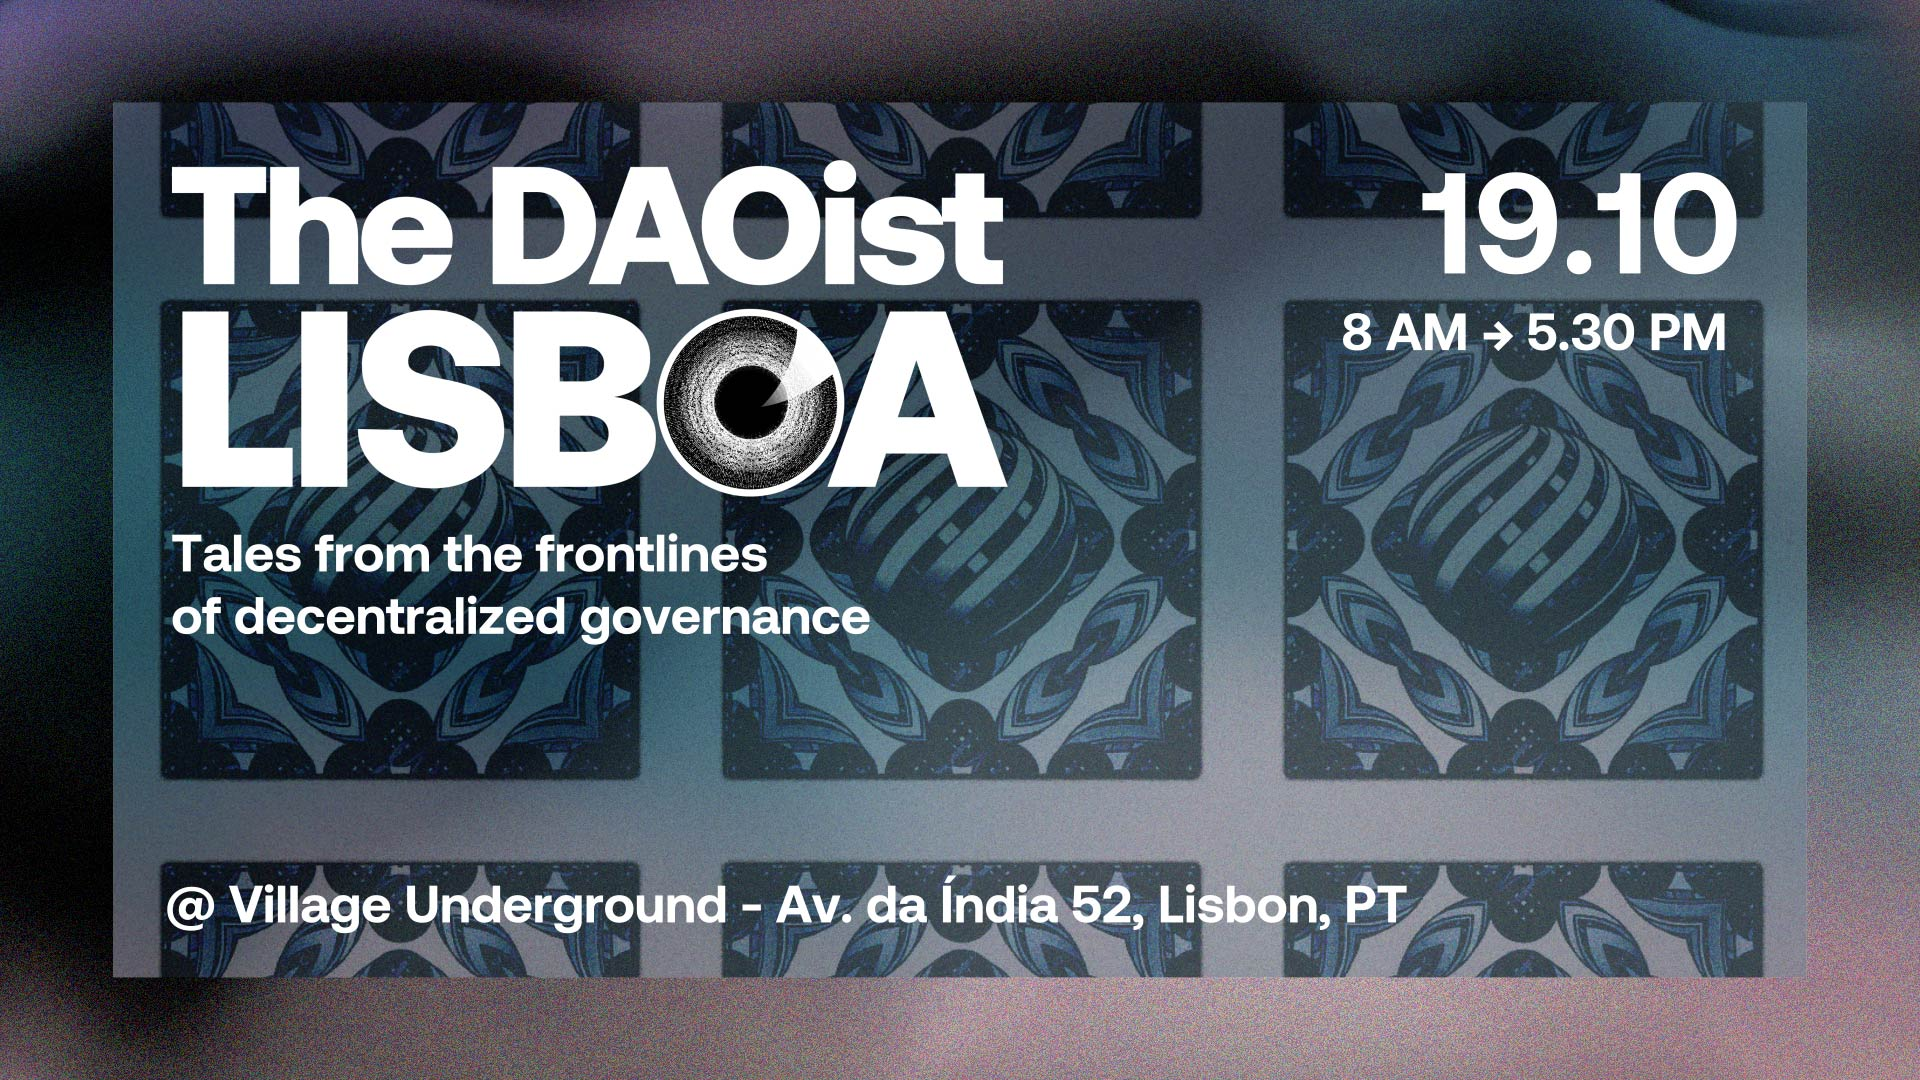 The DAOist Conference – 19.10